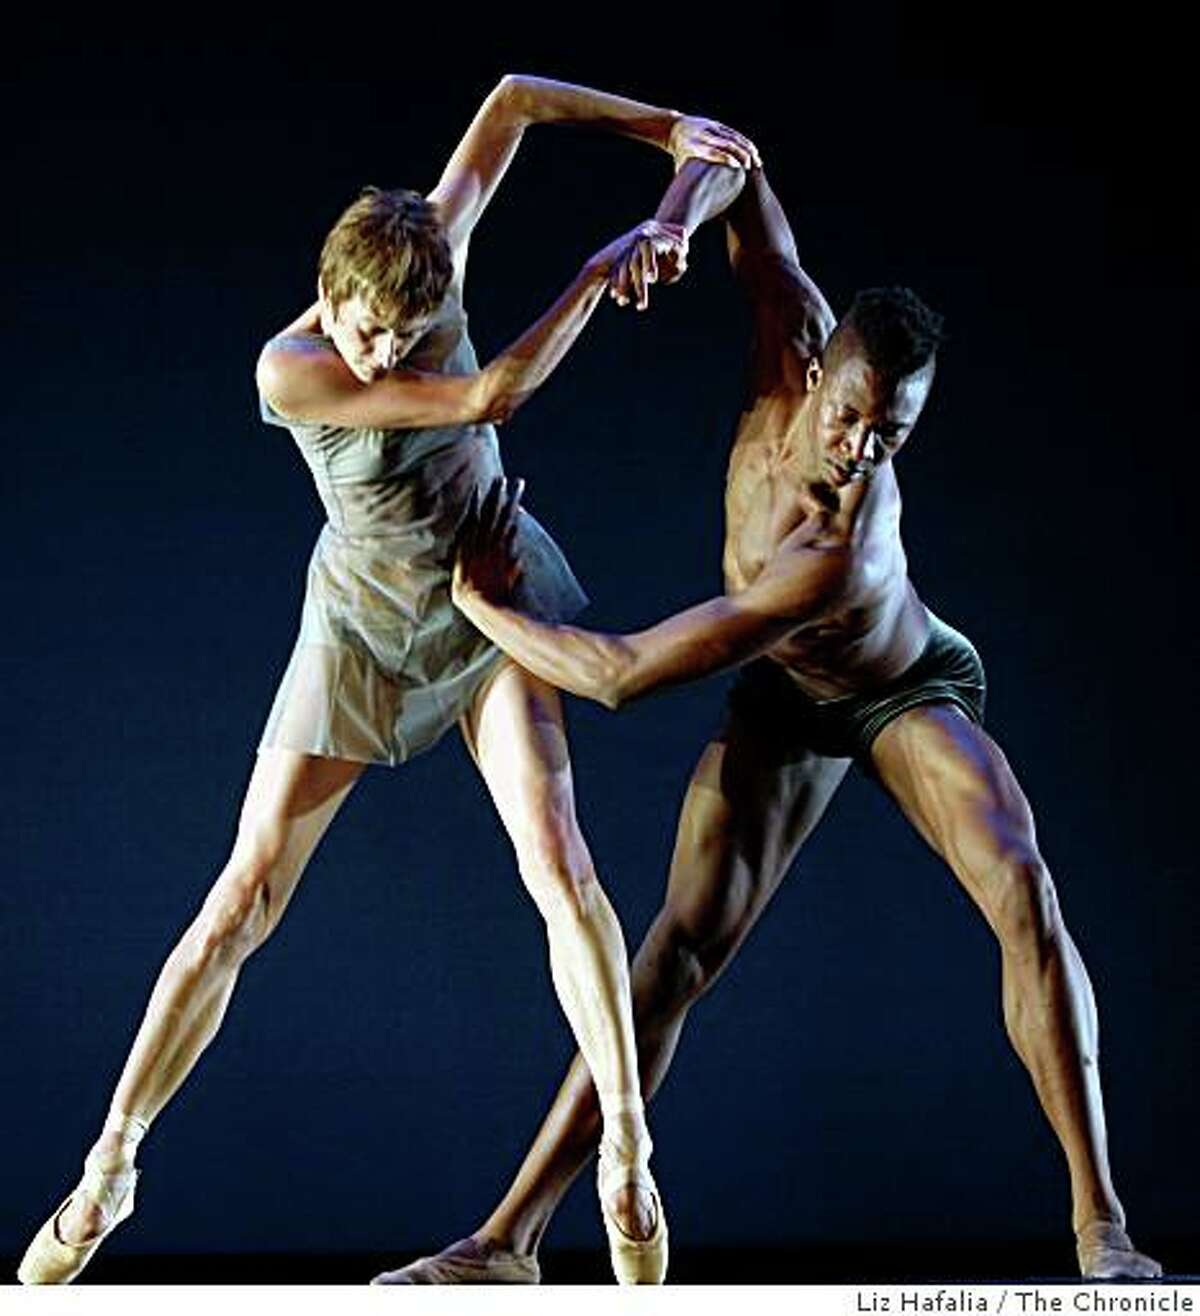 """Muriel Maffre and Corey Scott-Gilbert performing in """"The Steady Articulation of Perserverence"""" in the Lines Ballet in a dress rehearsal of the world premiere in San Francisco, Calif., in Yerba Buena Center on Thursday, October 16, 2008."""